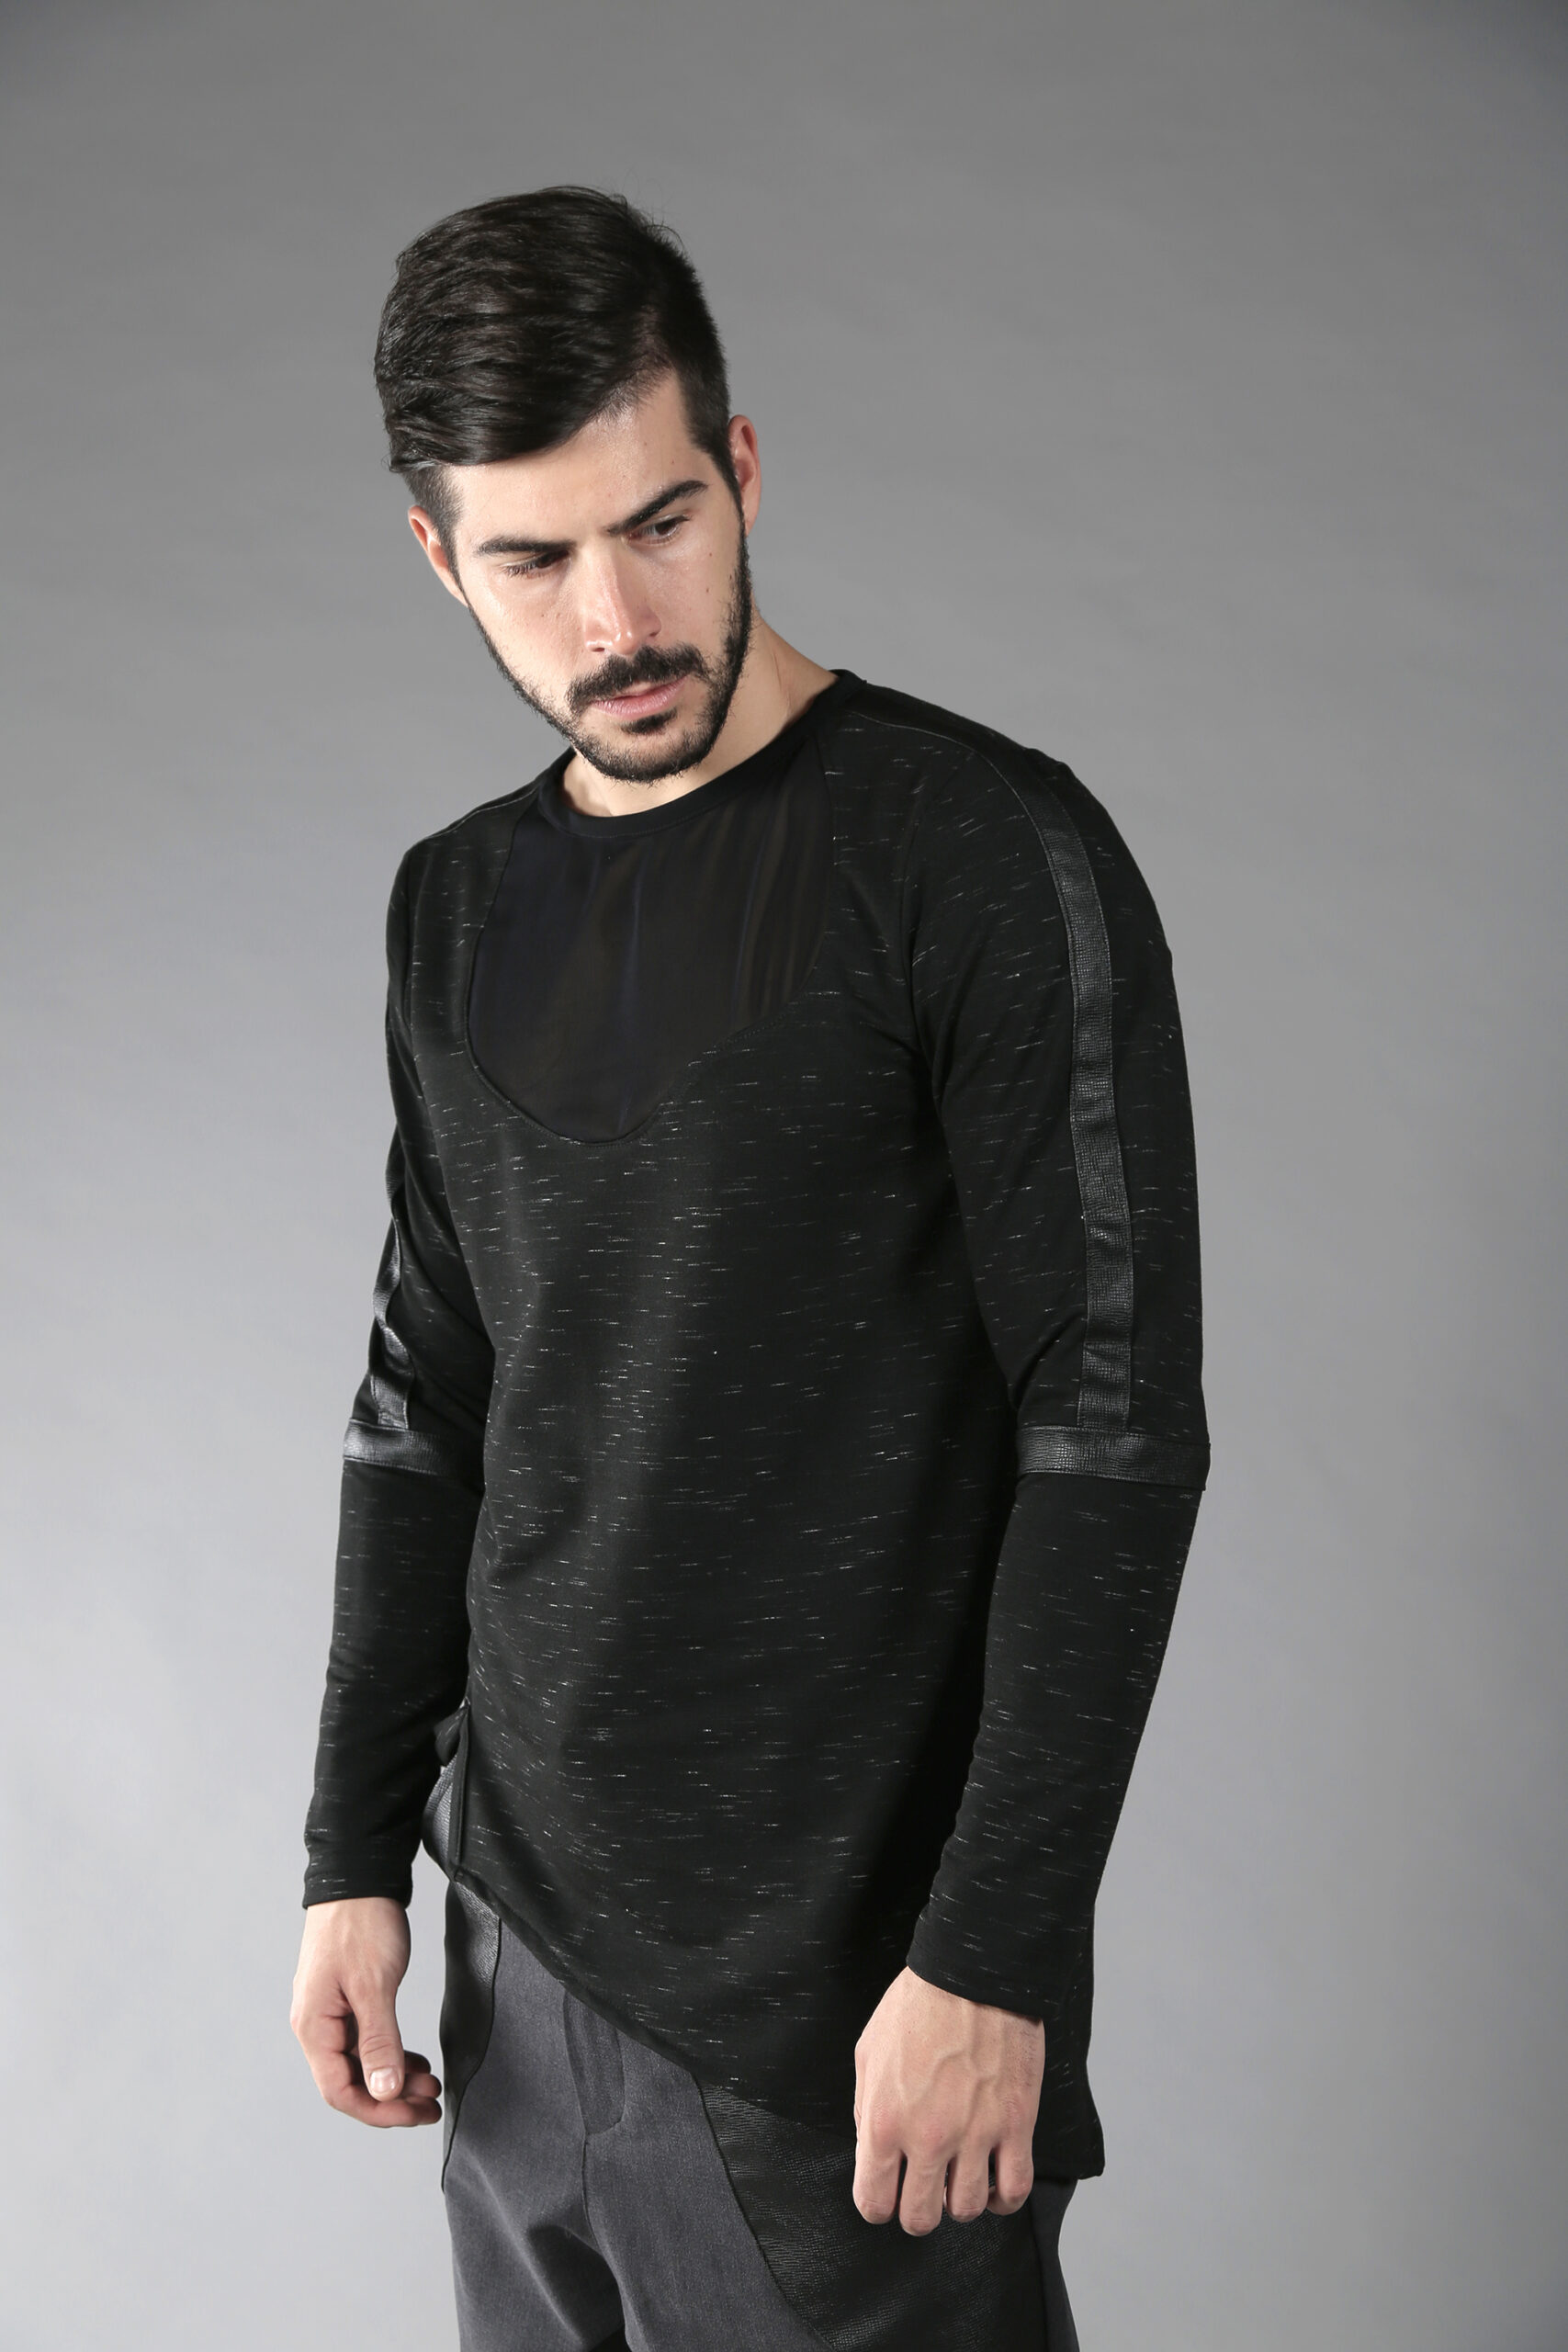 Black men pullover made out of soft cotton lycra fabric which feels nice on your skin. This asymmetric top is designed with fake leather stripes and net free-form parts on front and back